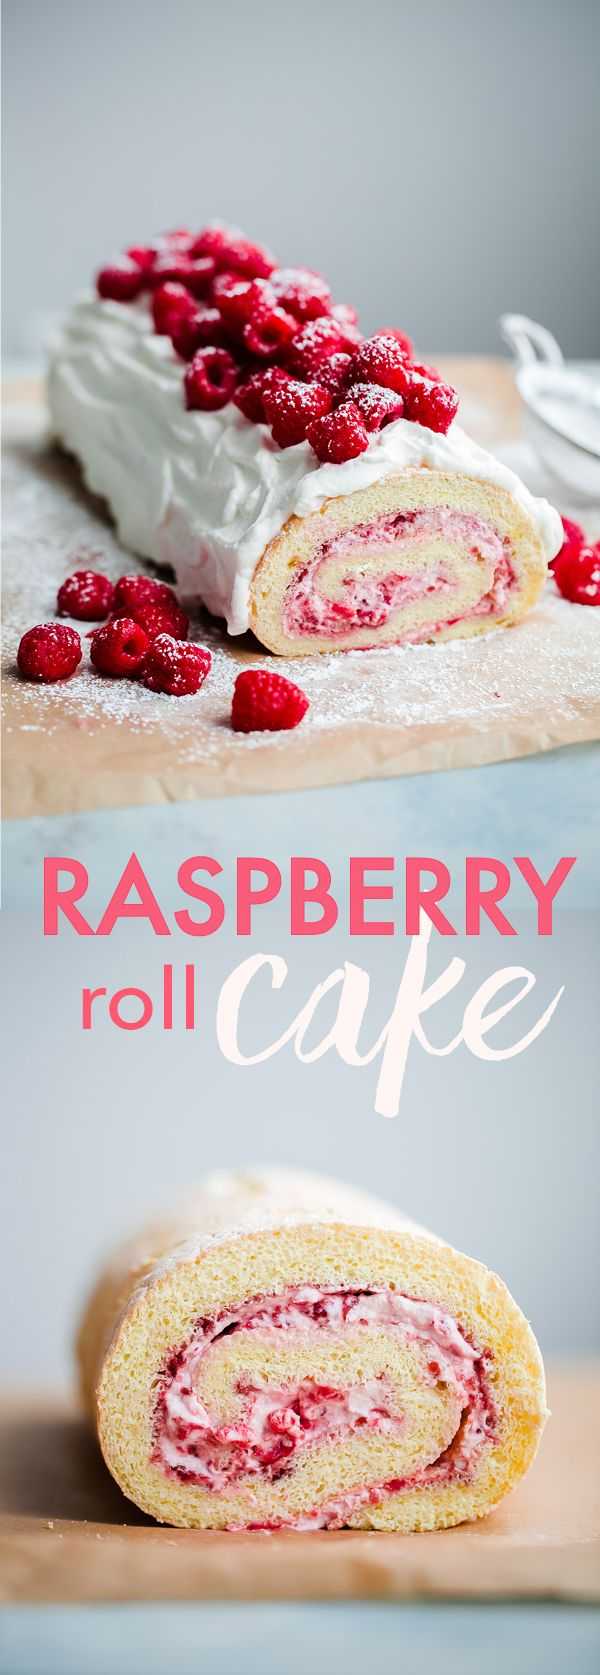 Raspberry Roll Cake - sponge cake filled with fresh raspberries, raspberry jam, and whipped cream. This light, airy cake recipe is perfect for summer!